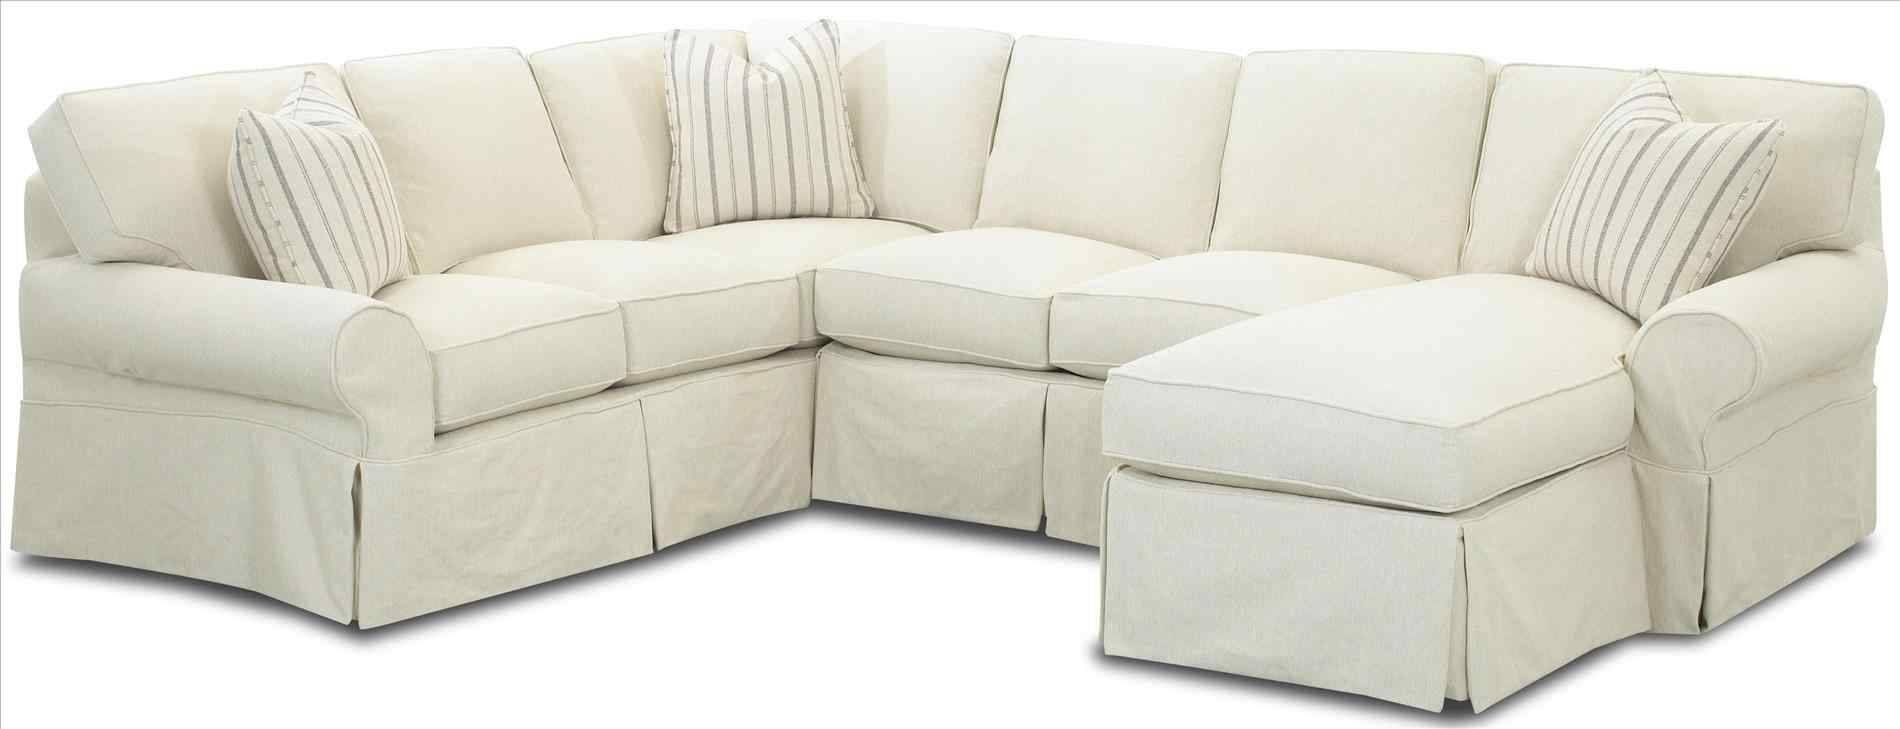 Sofa Covers For Leather Sectionals | Chair And Sofa throughout Slipcover for Leather Sectional Sofas (Image 24 of 30)